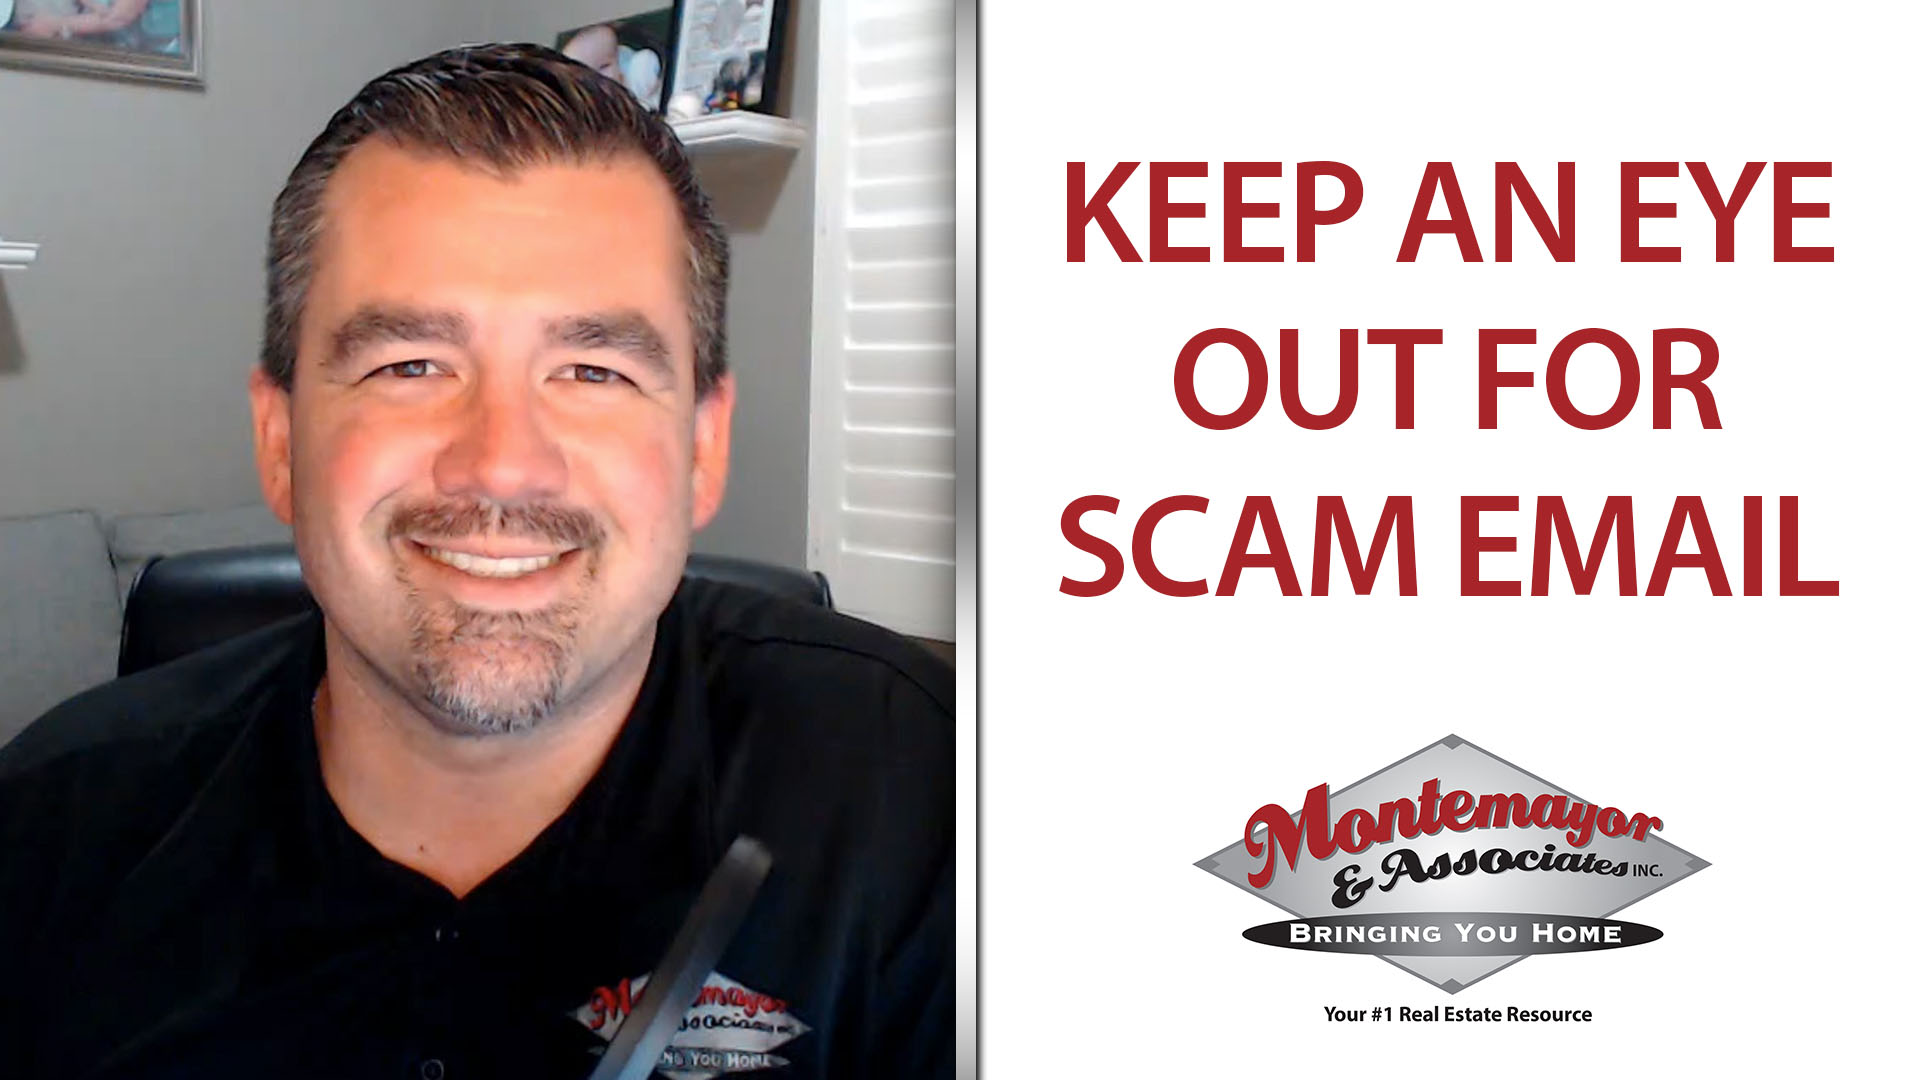 How Do You Keep Yourself Safe Against Email Scams?